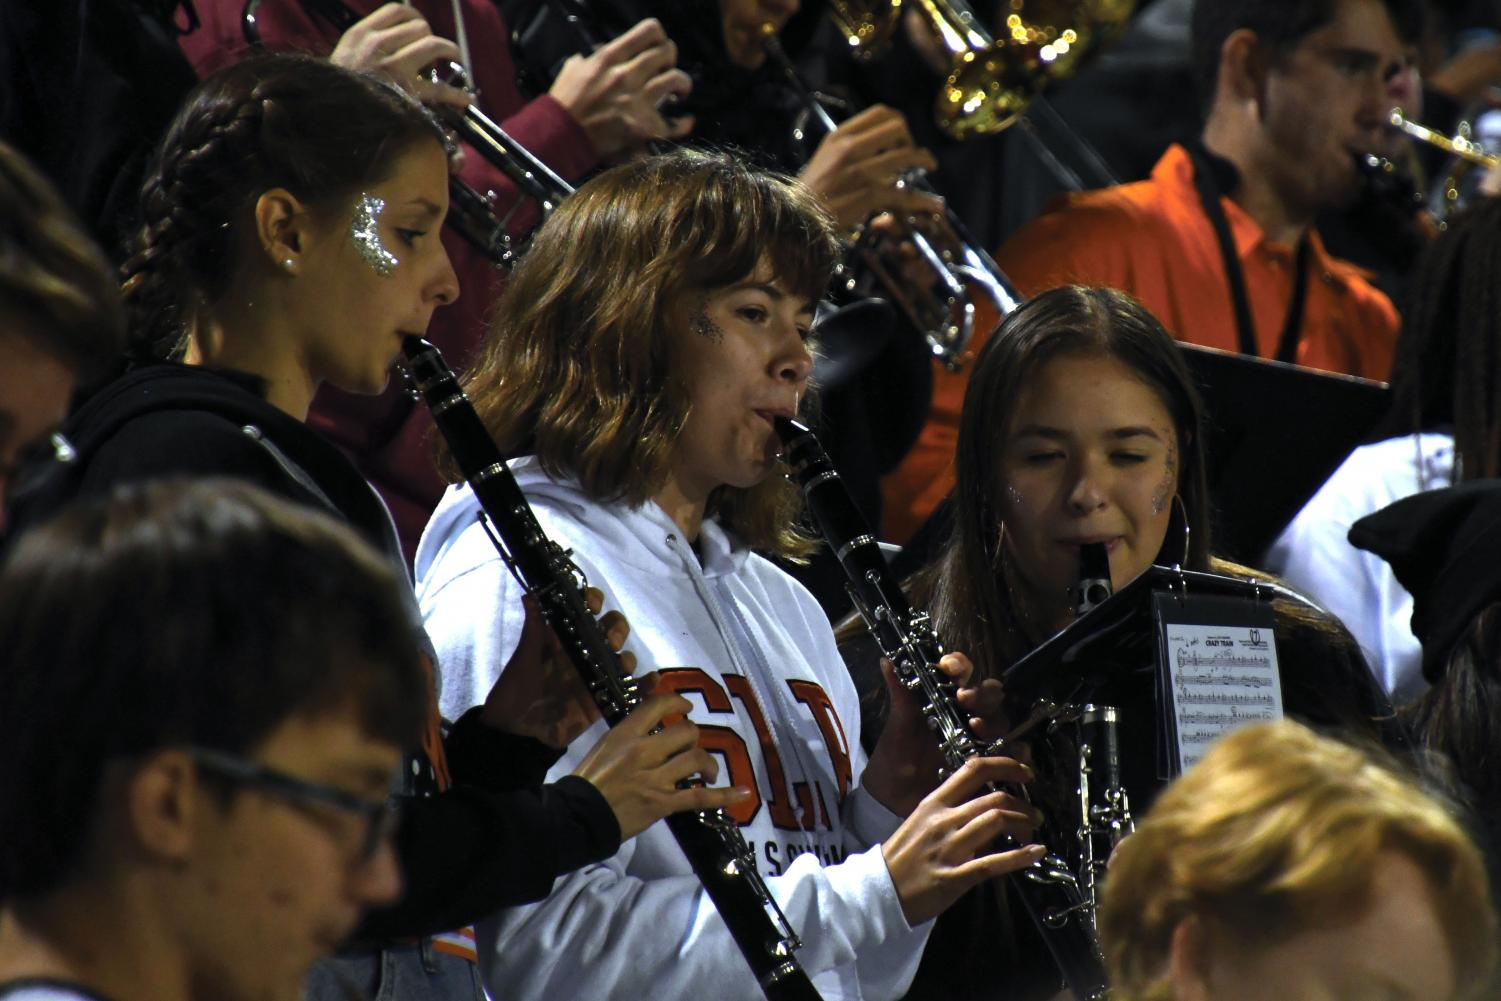 Seniors Claudia Stone, Lexi Lee and Cecilia Brown play in the pep band during Park's homecoming game Sep. 21. Lee participated alongside her peers at the Metro West All-Conference band.